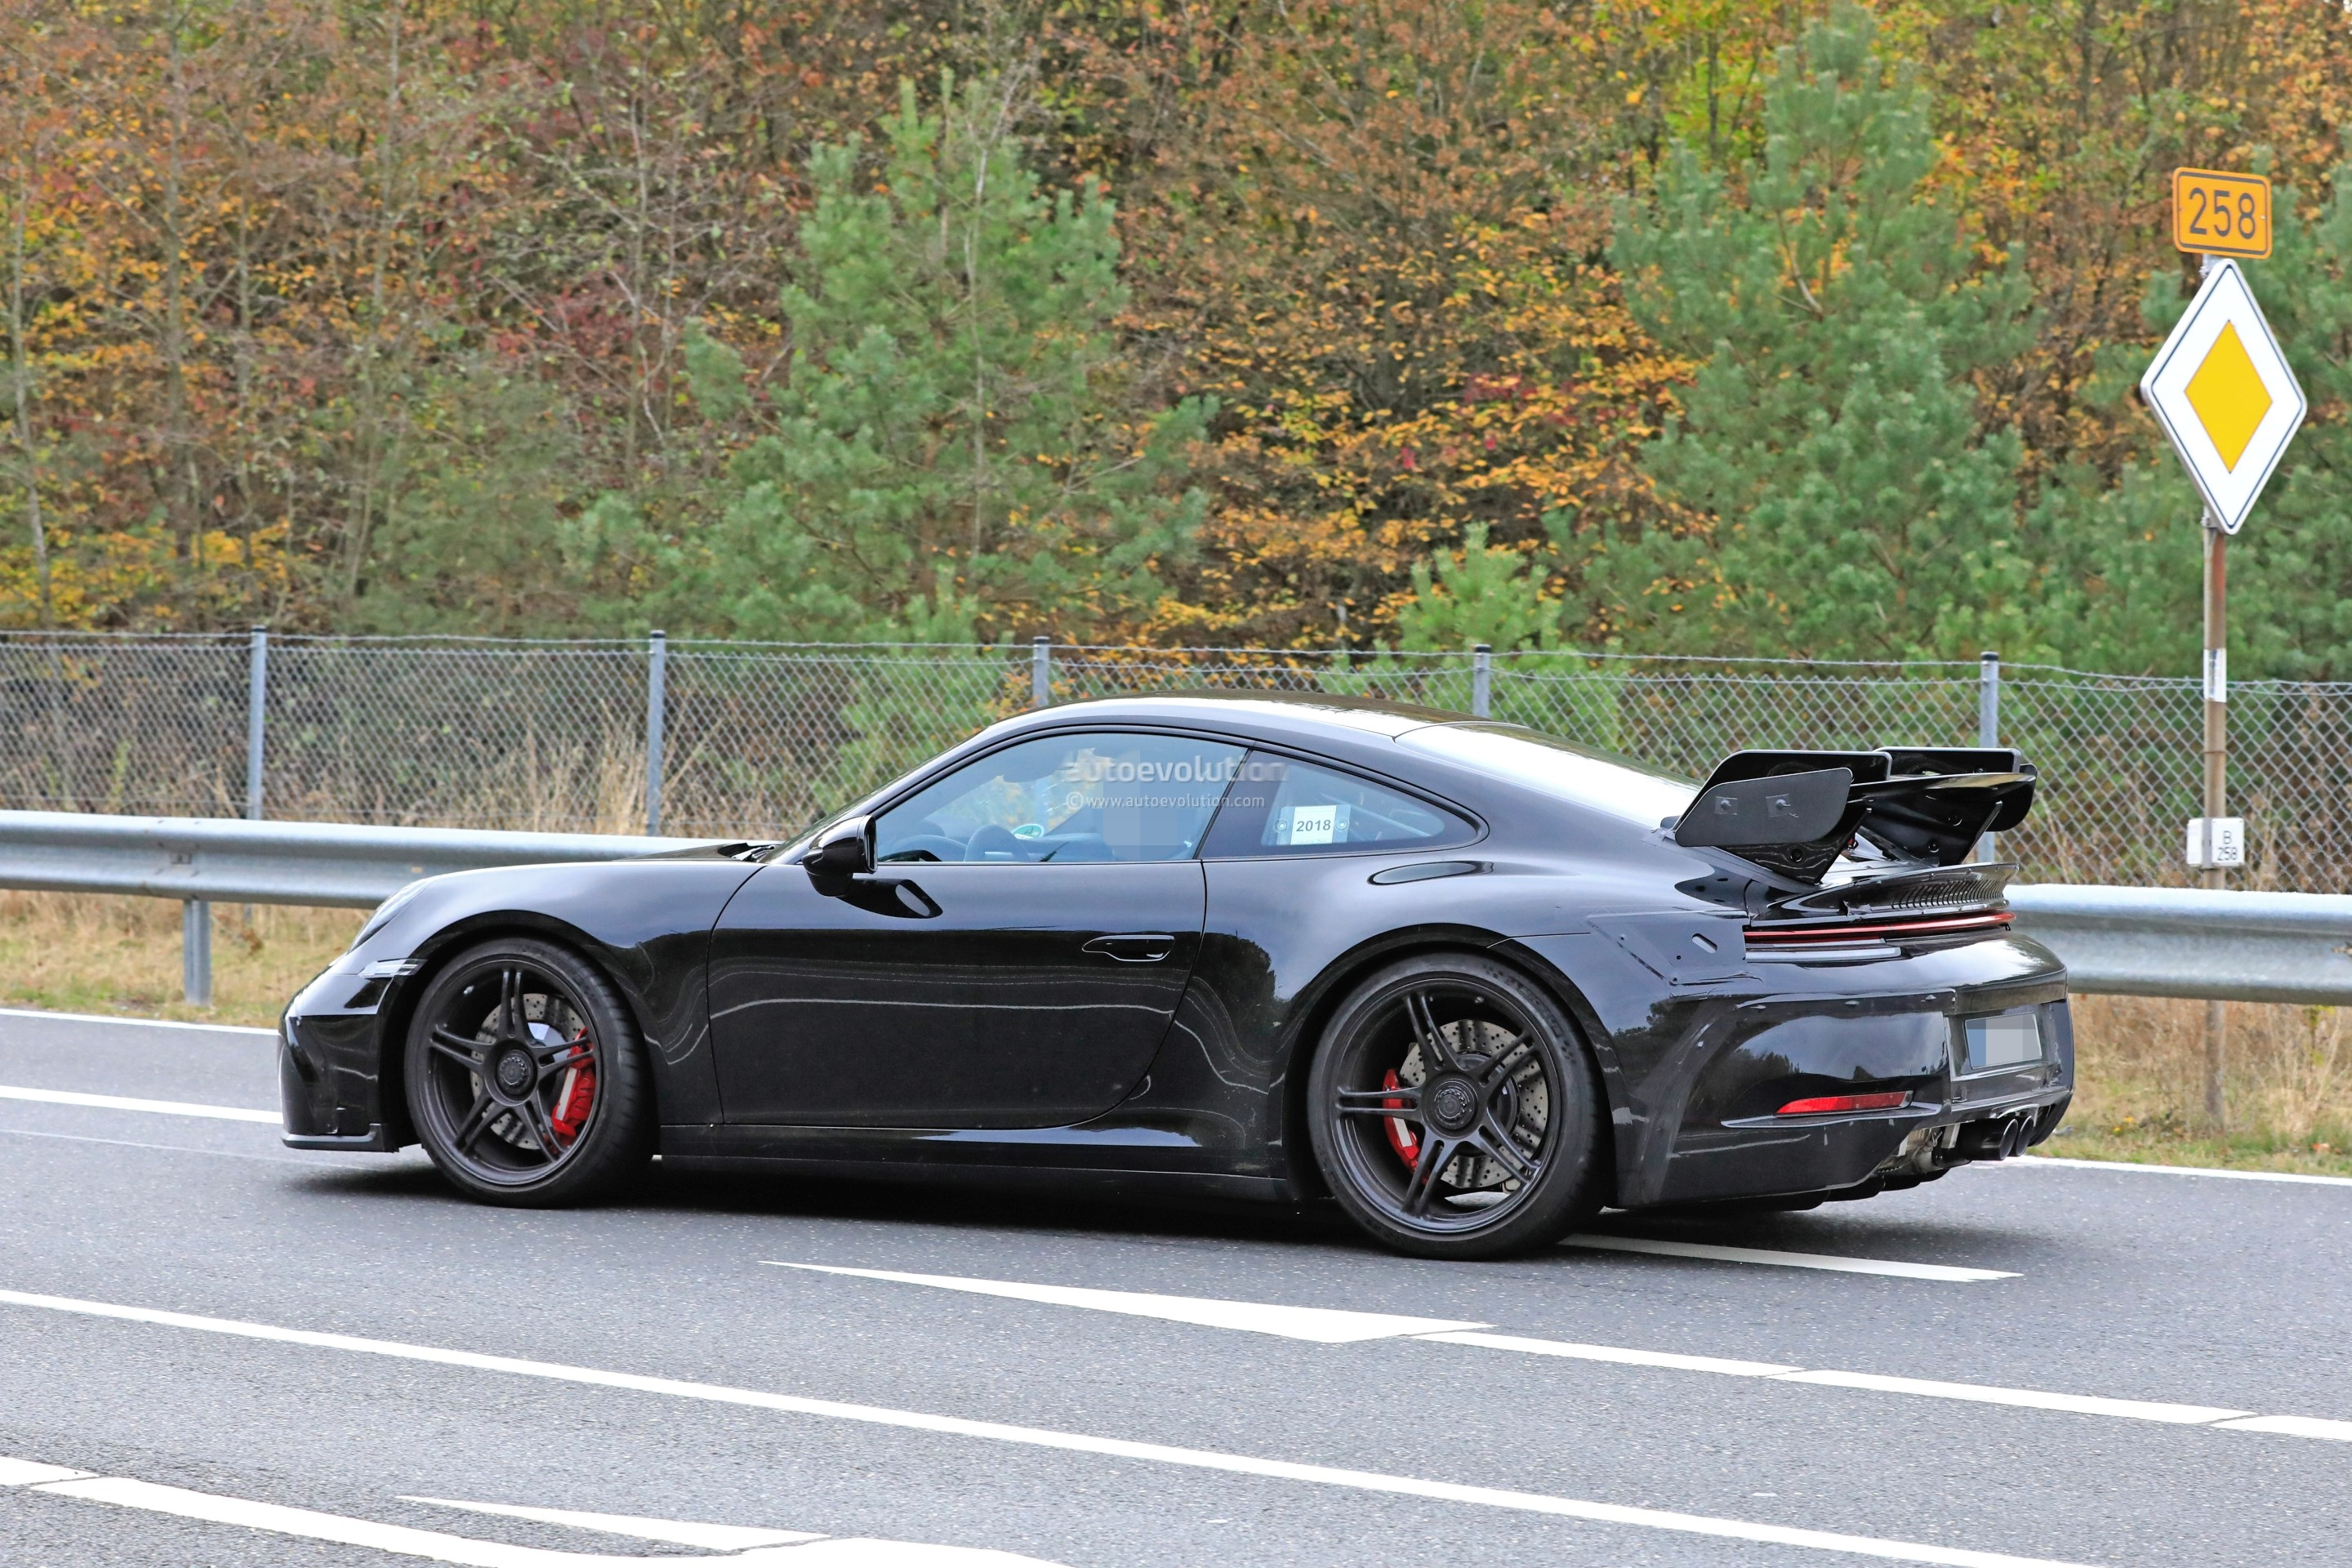 new-2020-p​orsche-911​-gt3-proto​type-shows​-productio​n-design_9